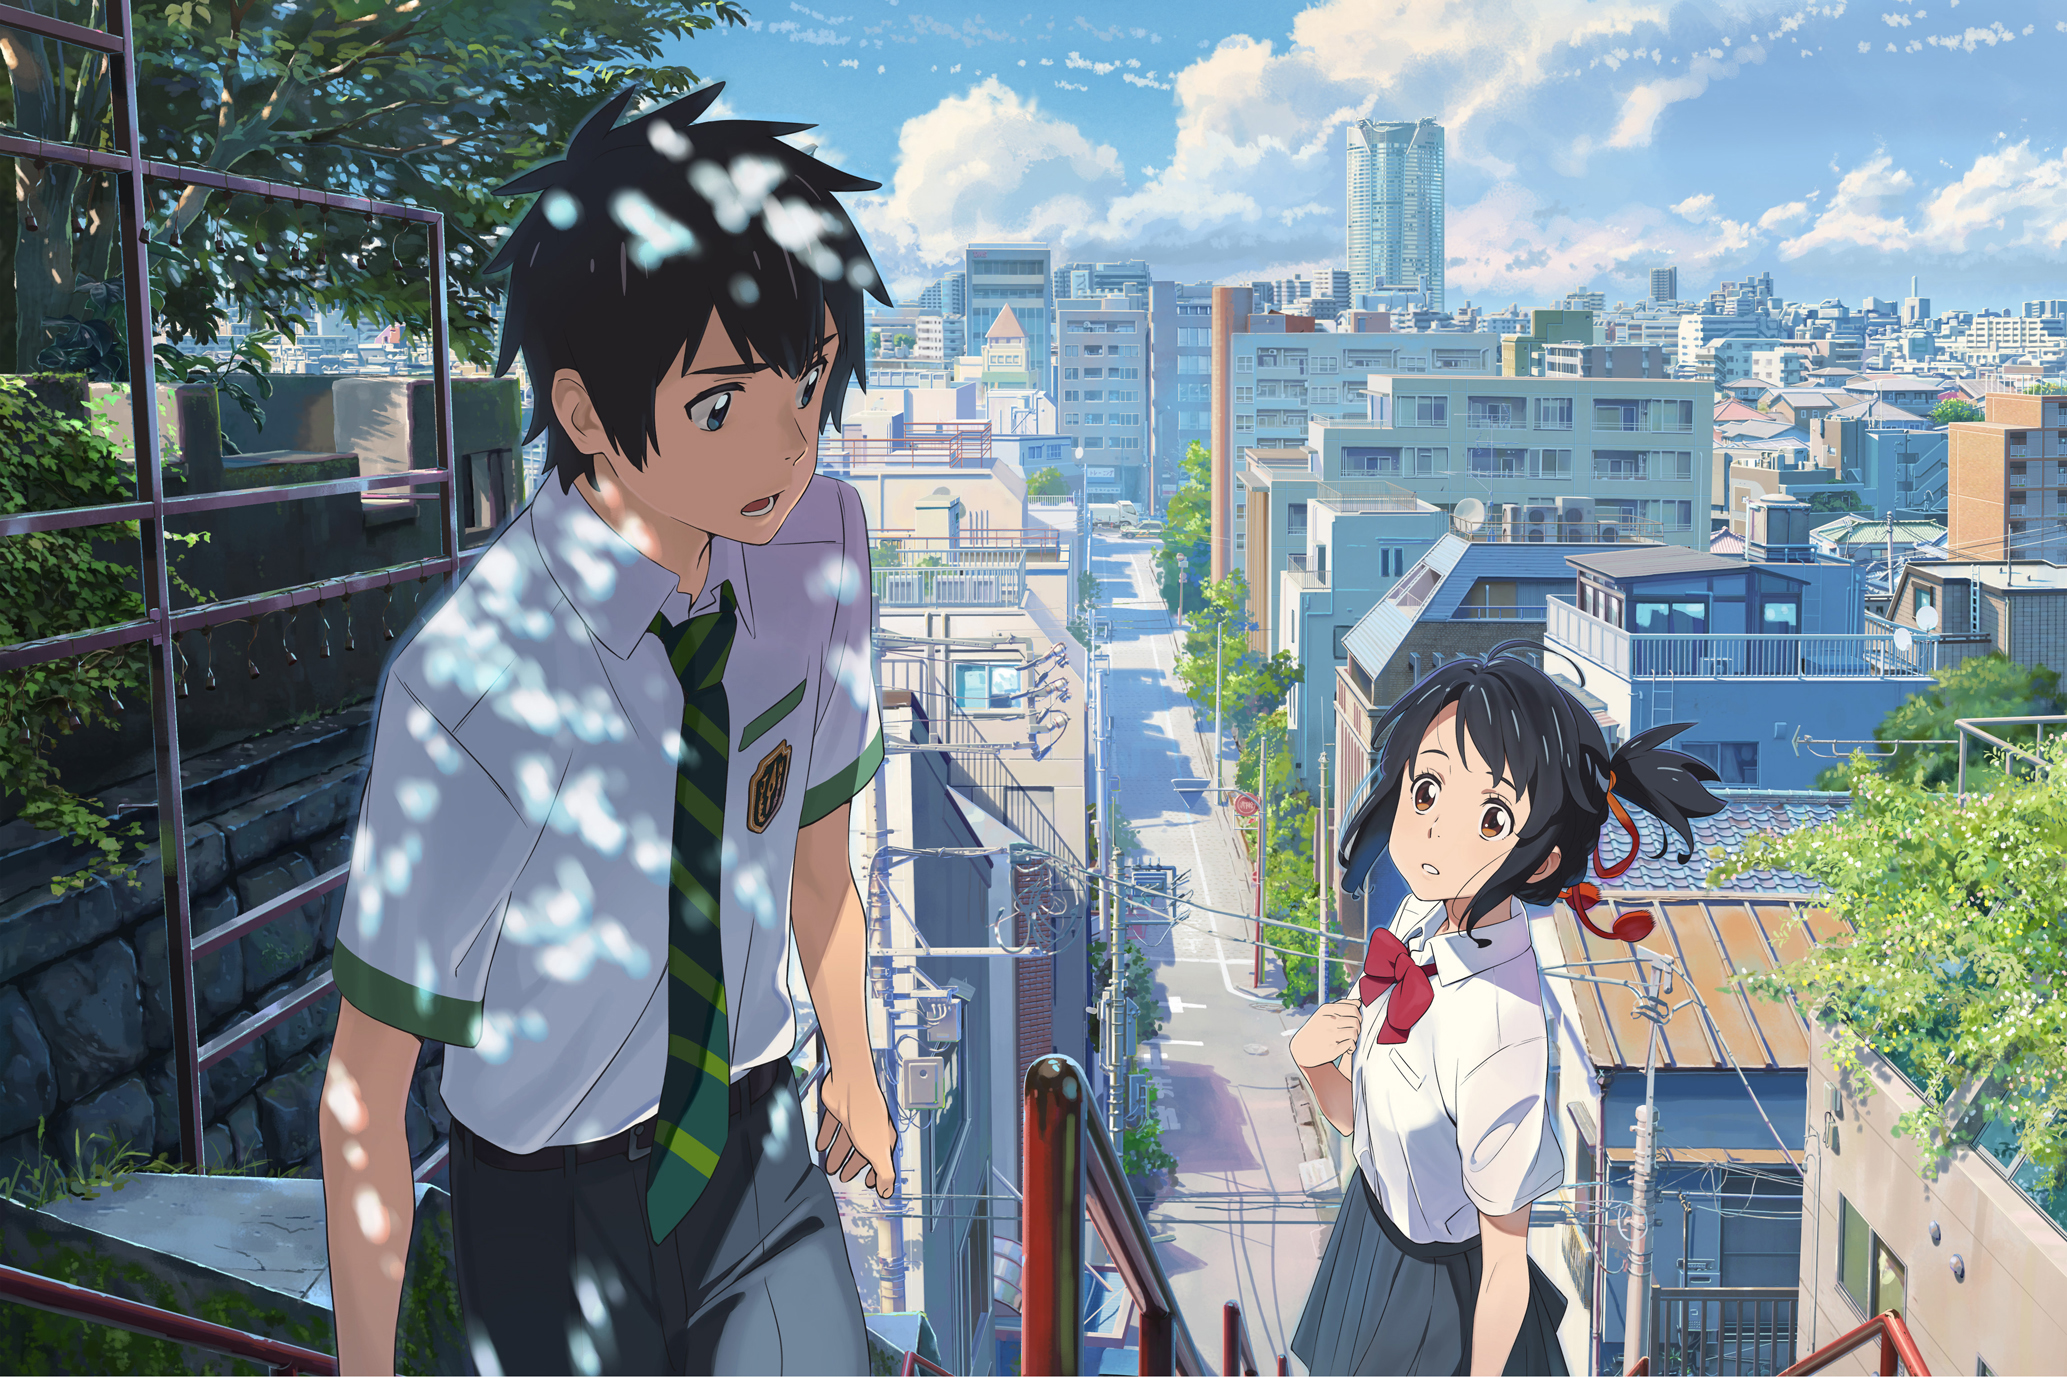 Your name 君の名は kimi no na wa otaku review anime